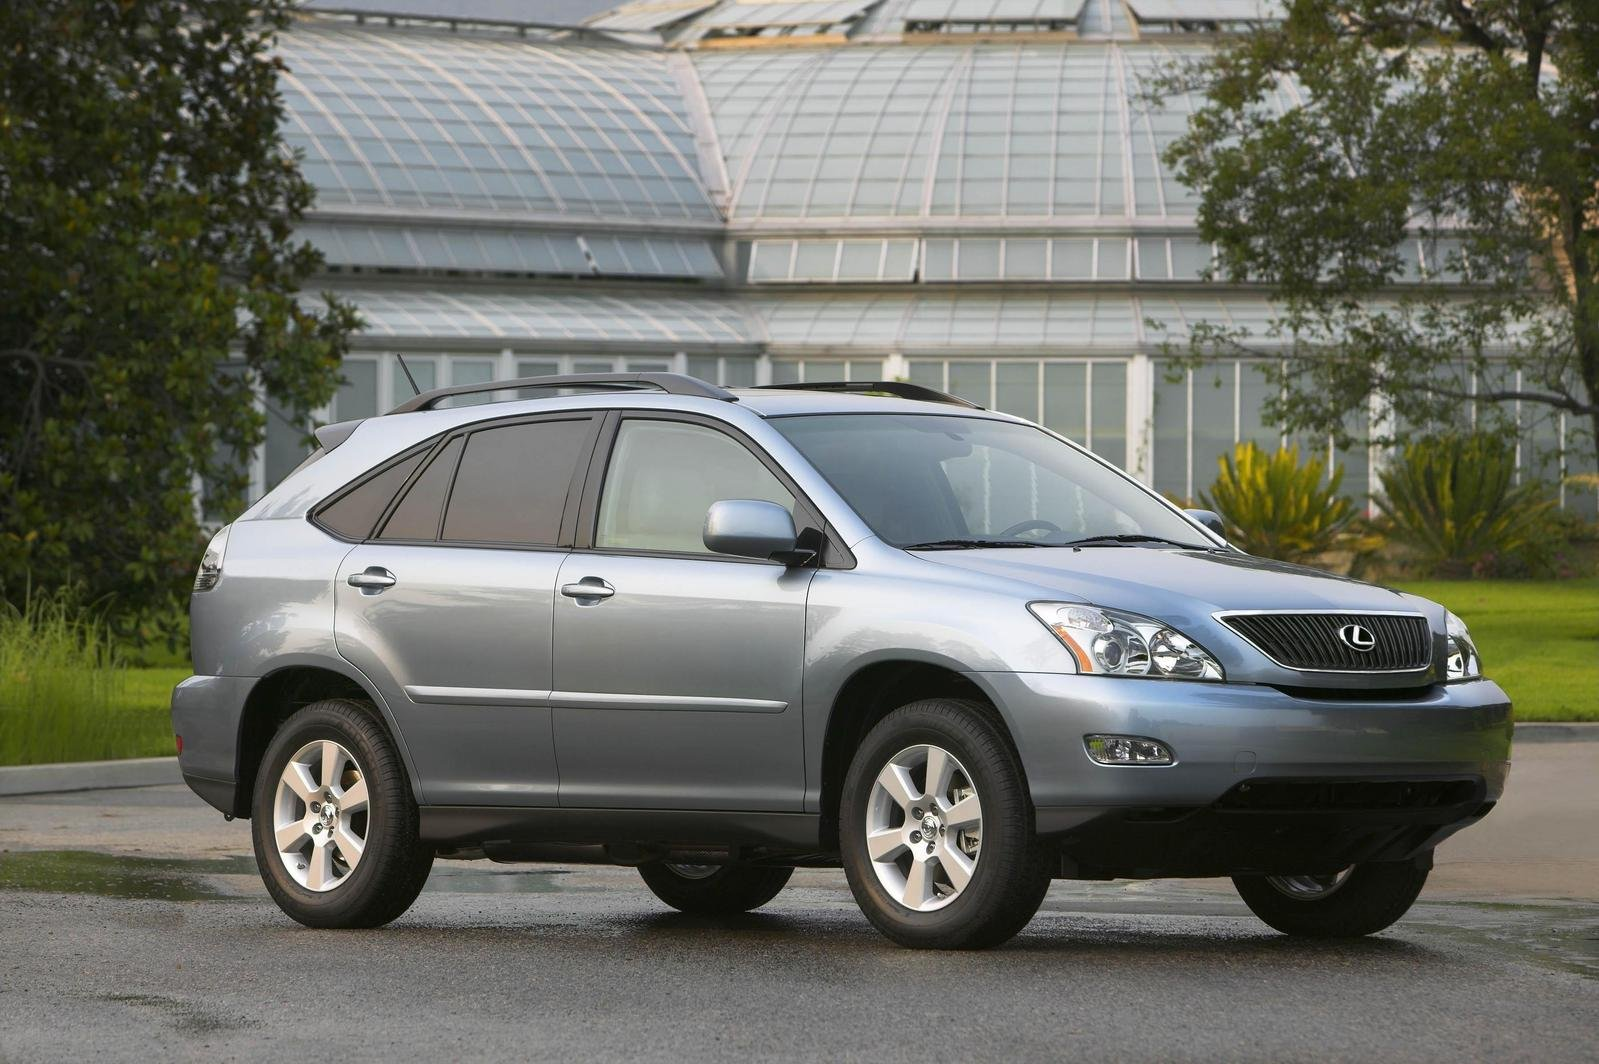 2008 lexus rx 350 luxury suv prices announced picture 142157 car news top speed. Black Bedroom Furniture Sets. Home Design Ideas